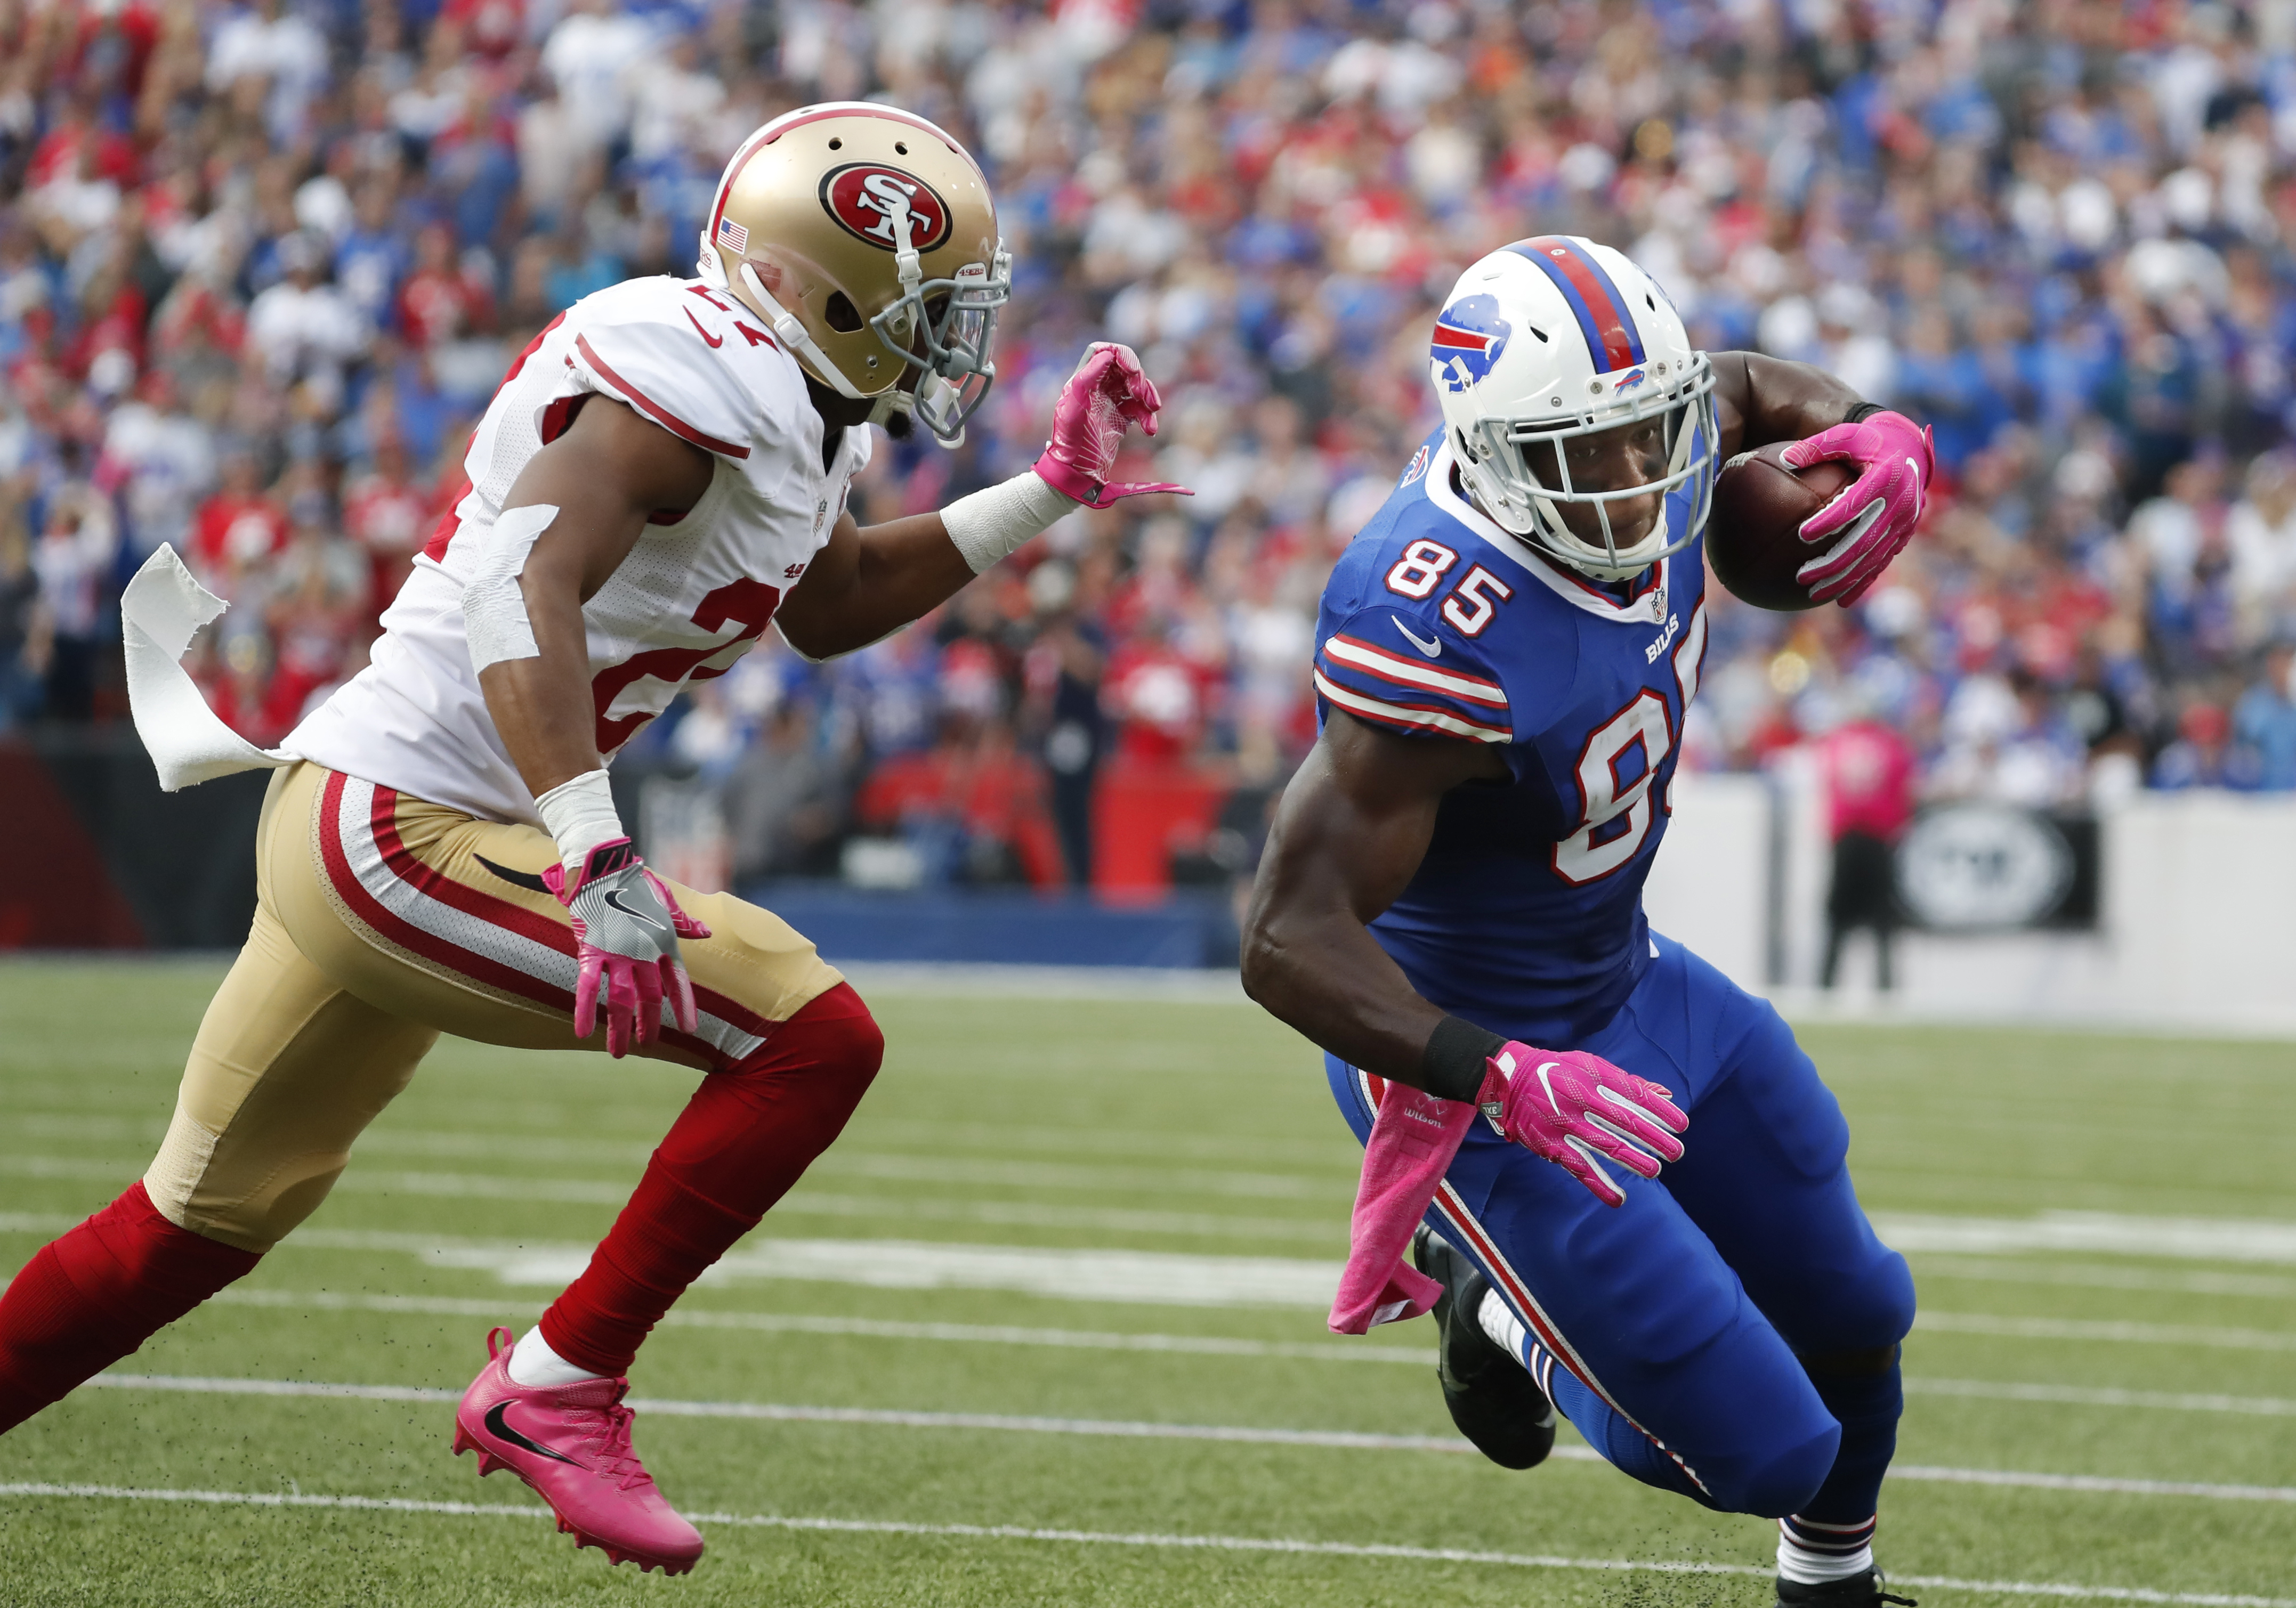 Buffalo Bills tight end Charles Clay (85) puts a move on San Francisco 49ers cornerback Keith Reaser (27) during the first quarter at New Era Field on Sunday, Oct. 16, 2016.  (Harry Scull Jr./Buffalo News)